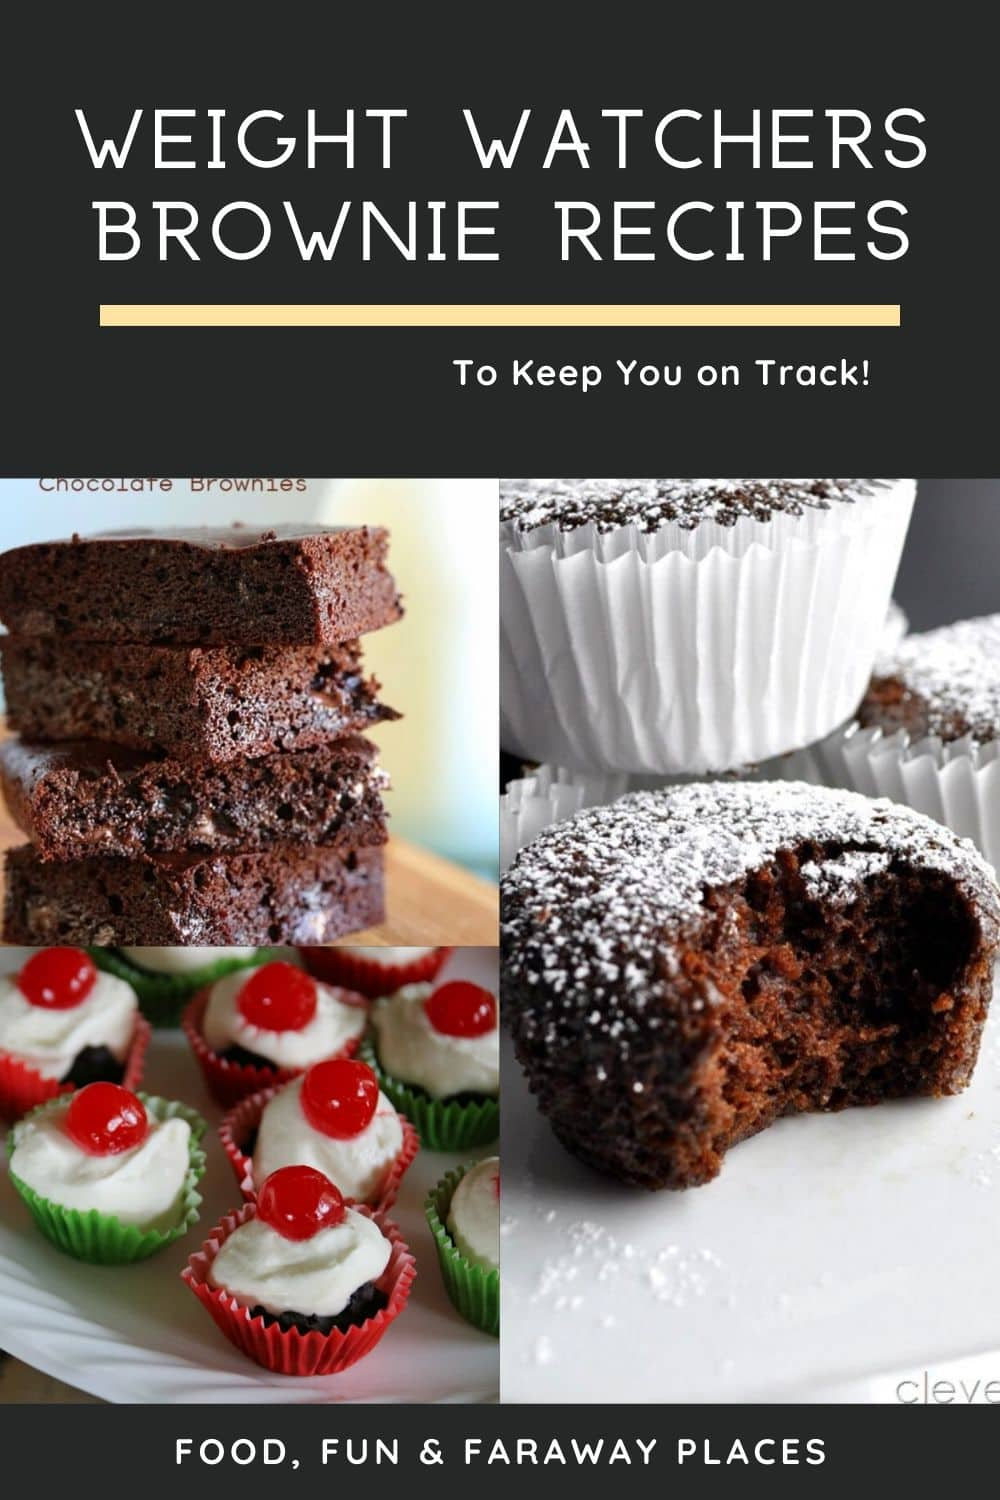 Having recipes for a variety of Weight Watchers brownies makes it easier to stay on the plan. Wanting something sweet and not being able to have it makes you feel deprived.